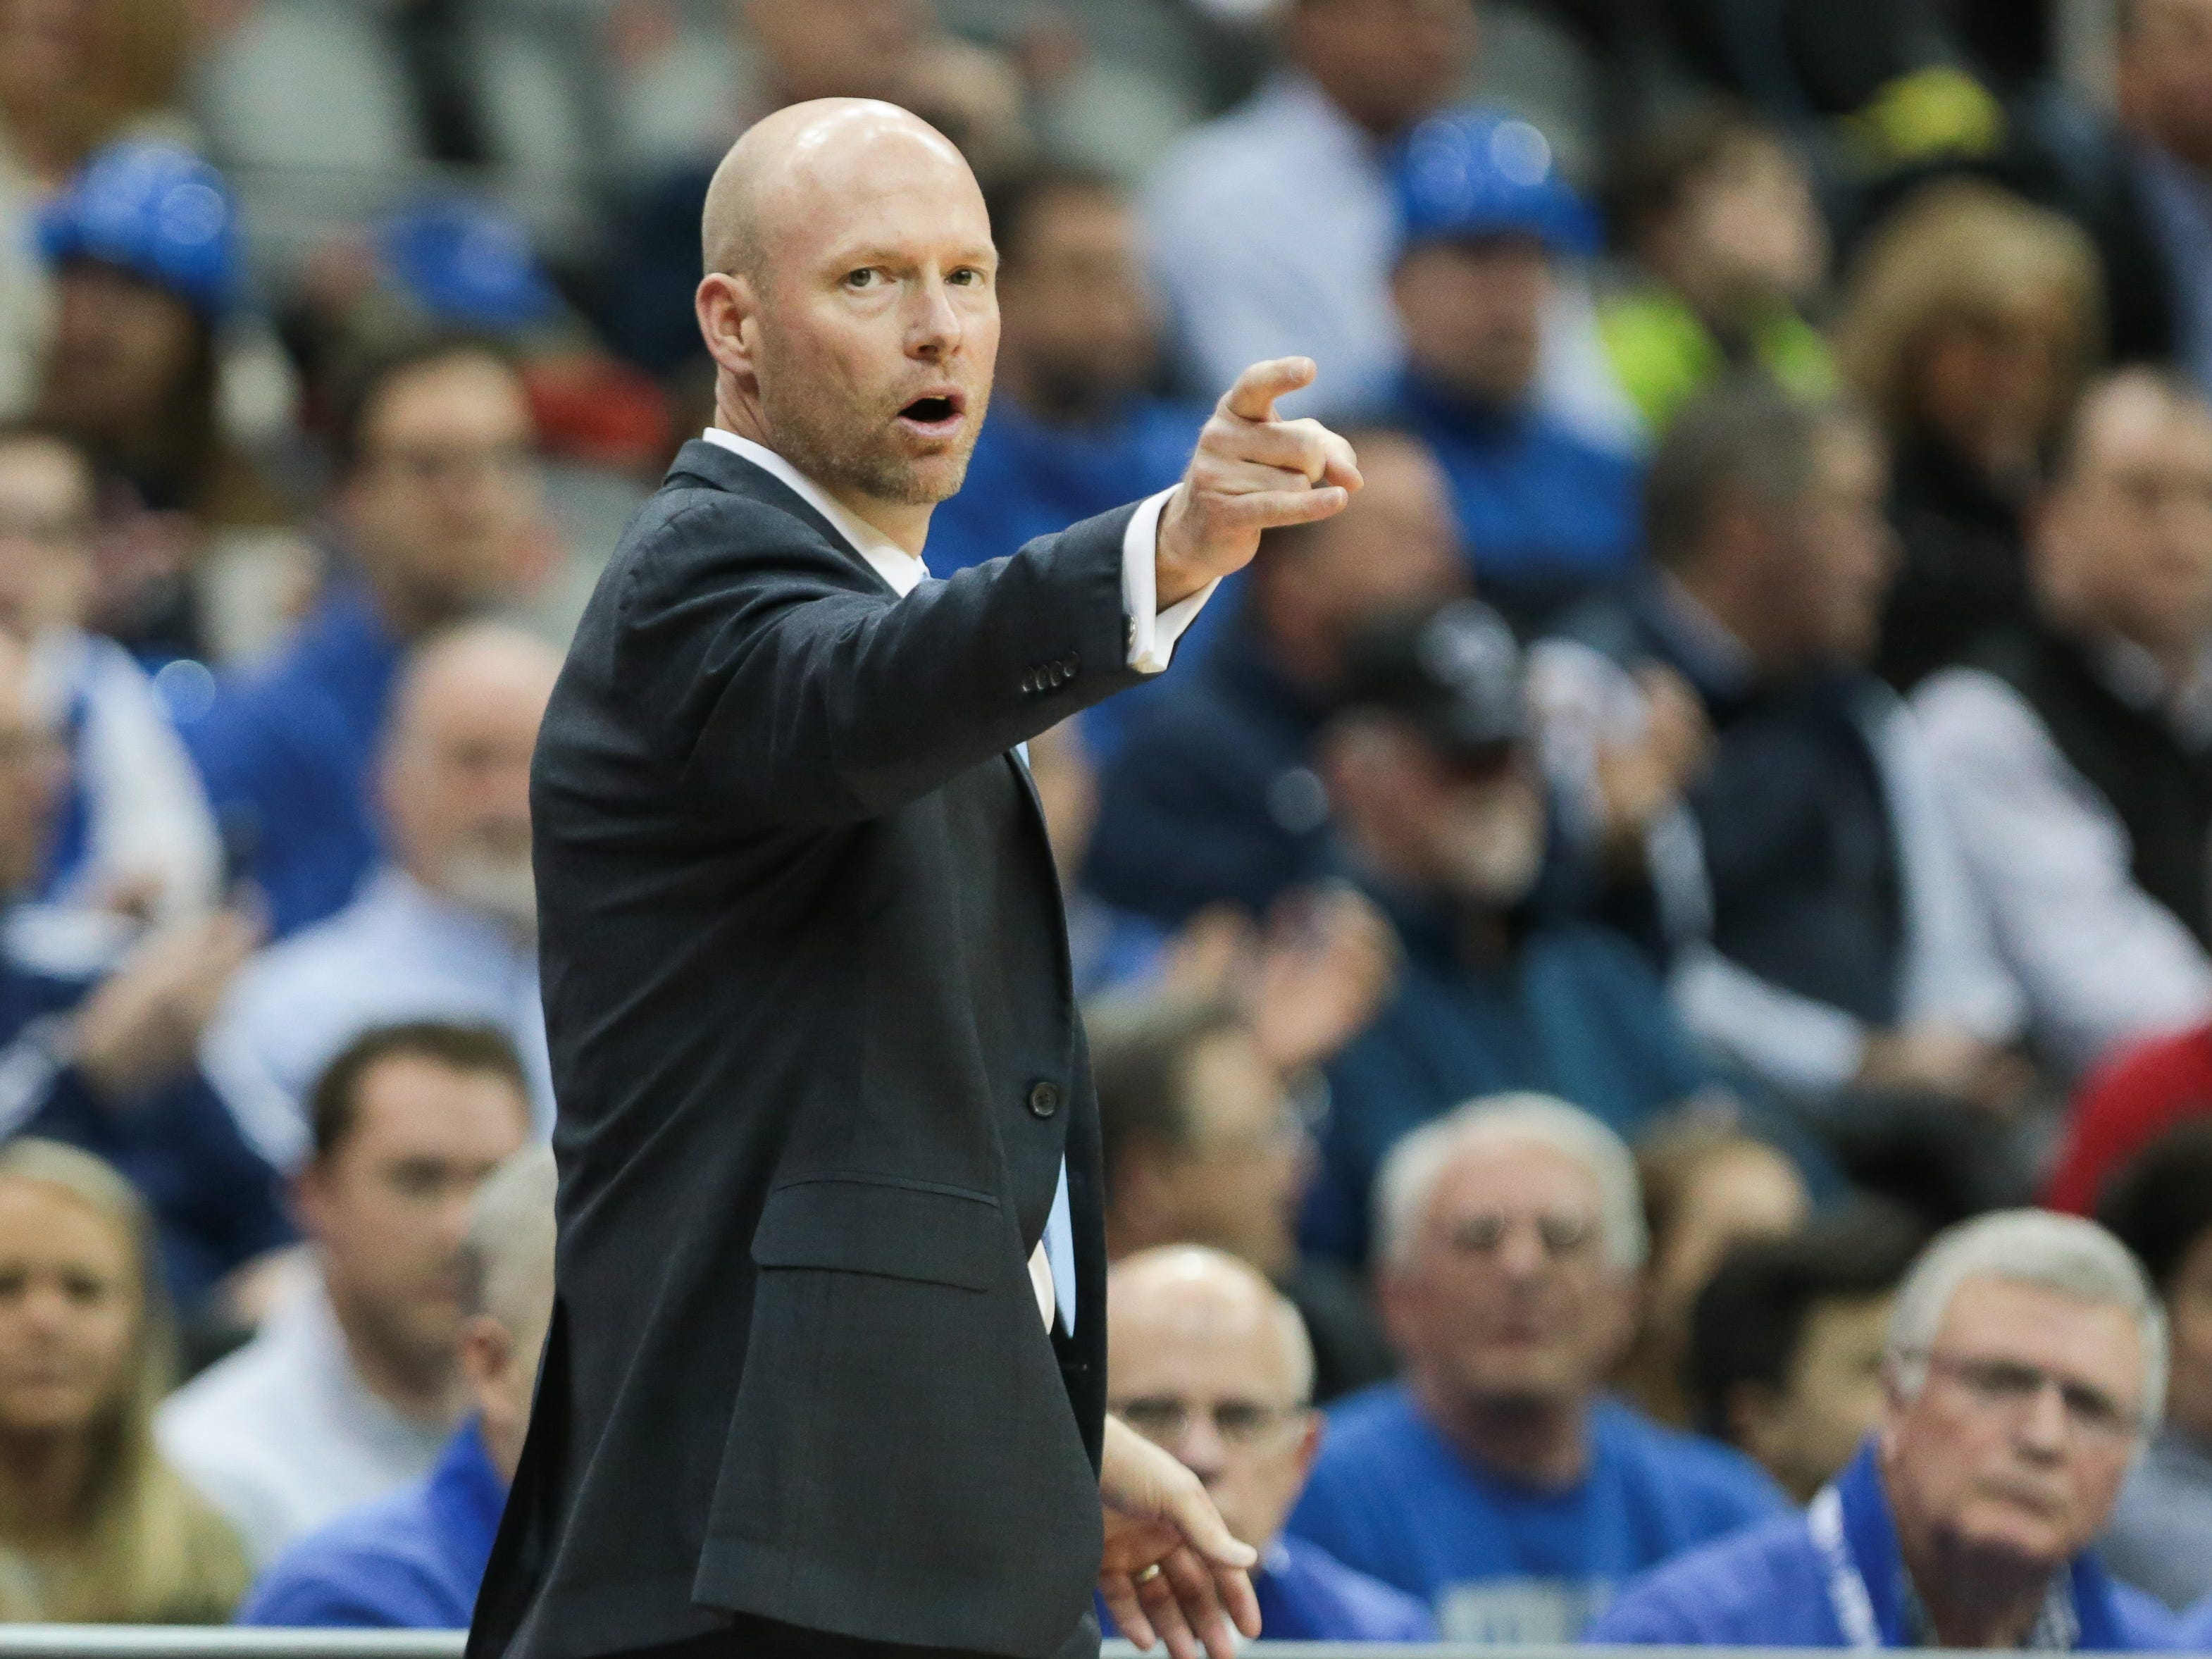 Seton Hall Pirates head coach Kevin Willard points during the first half against the Marquette Golden Eagles at Prudential Center.